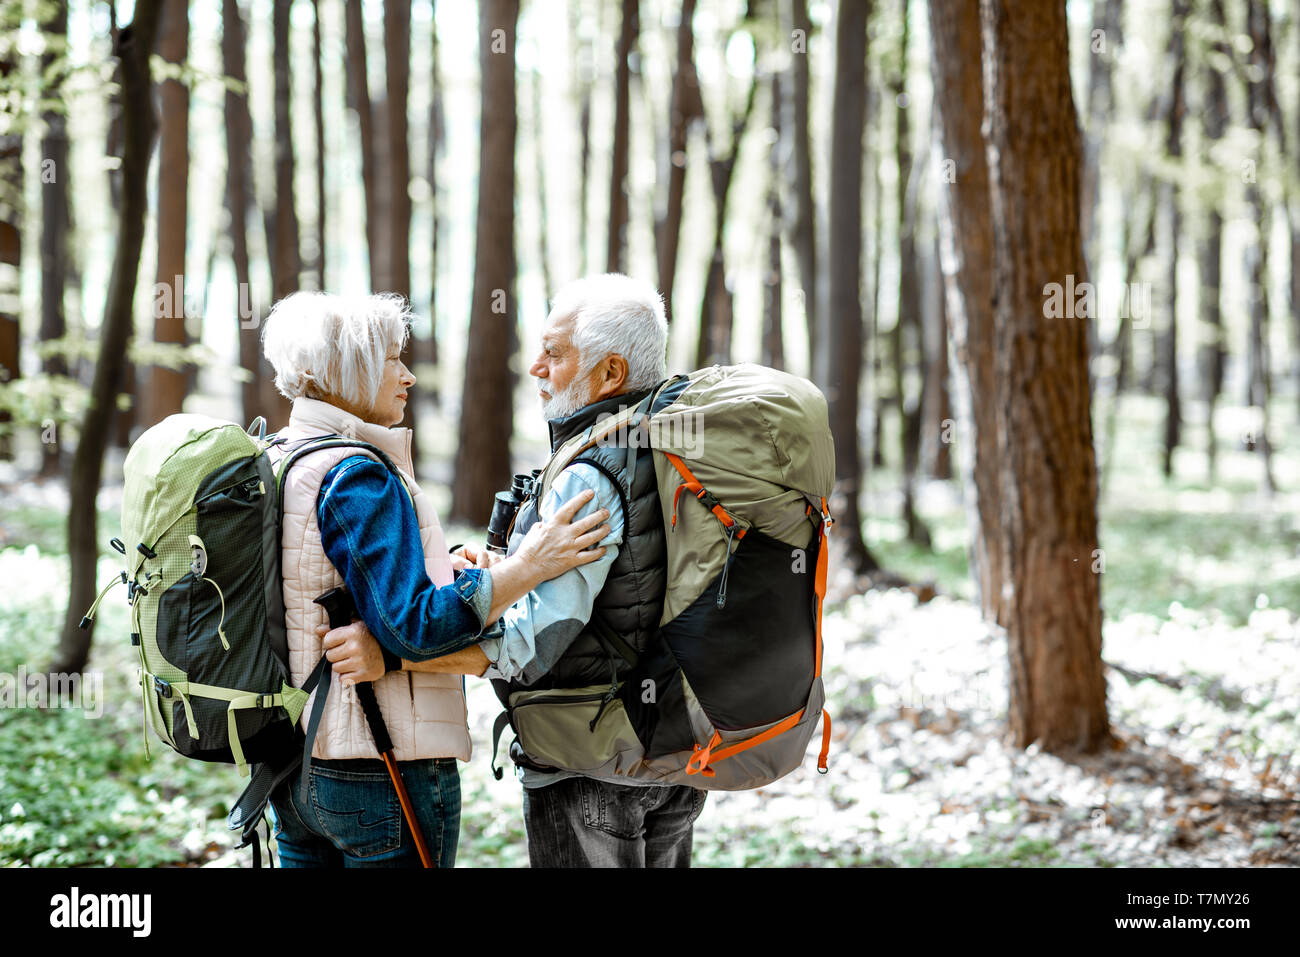 Lovely senior couple hugging in the forest while hiking with backpacks, back view - Stock Image